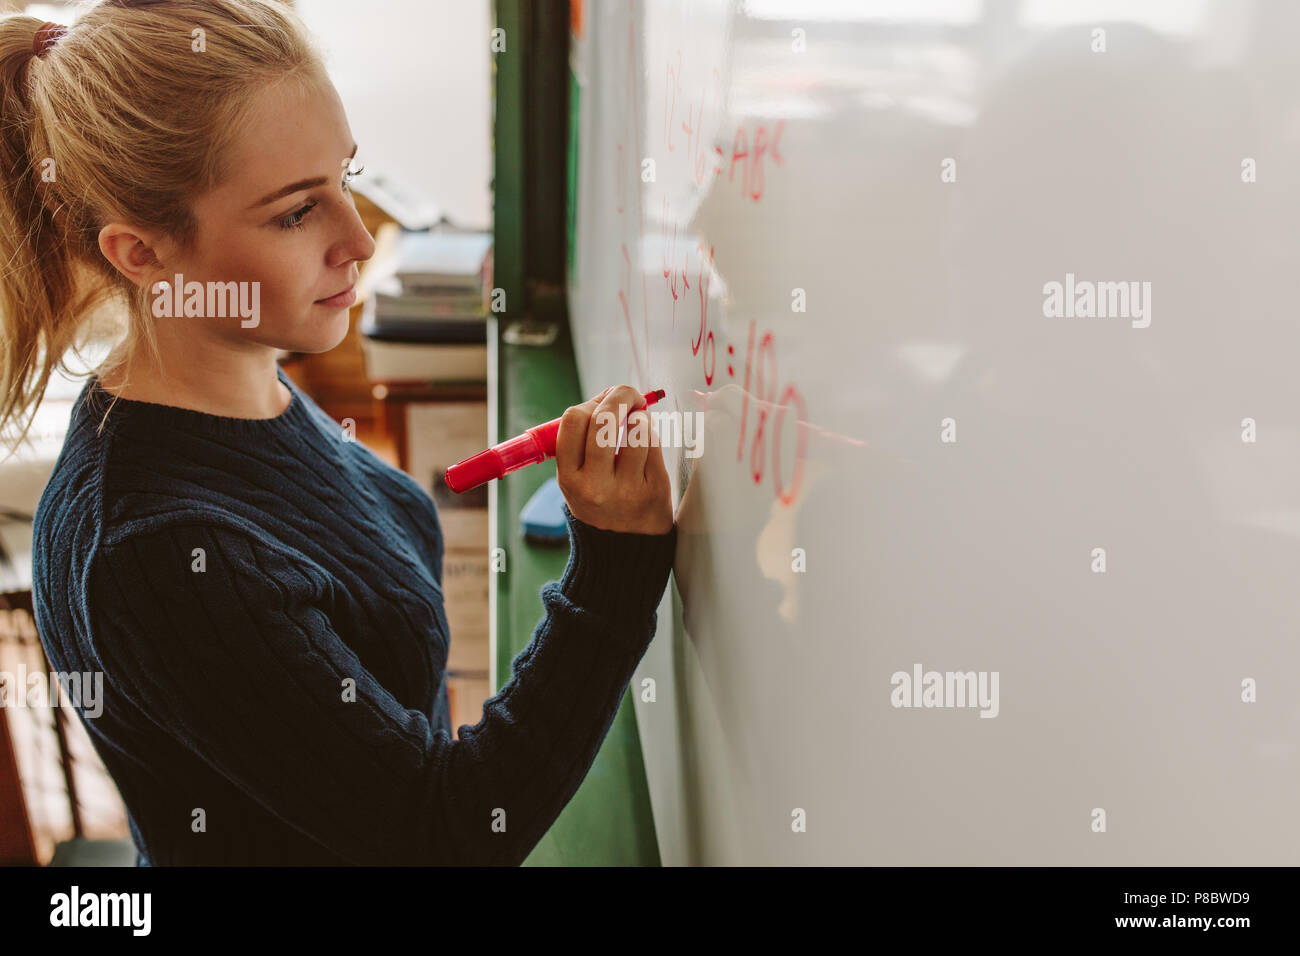 Close up of female student writing an equation on white board in classroom. Girl writing on board during maths class. - Stock Image